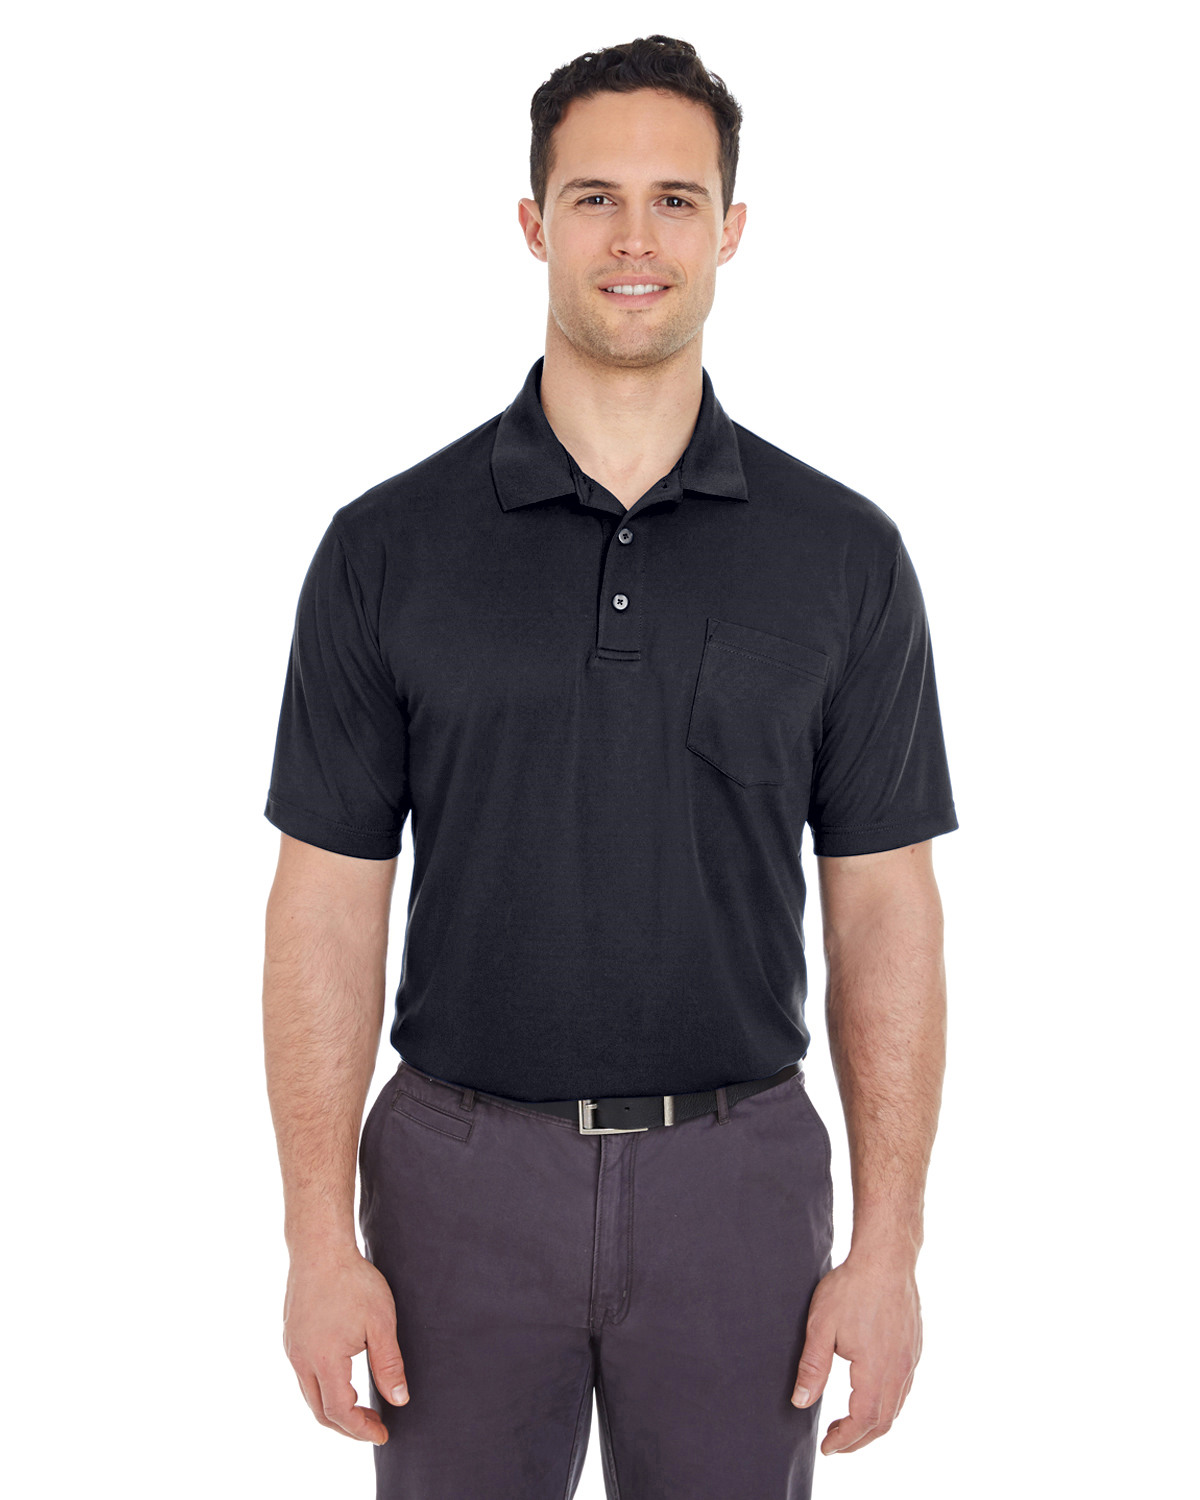 Adult Cool & Dry Mesh Piqué Polo with Pocket